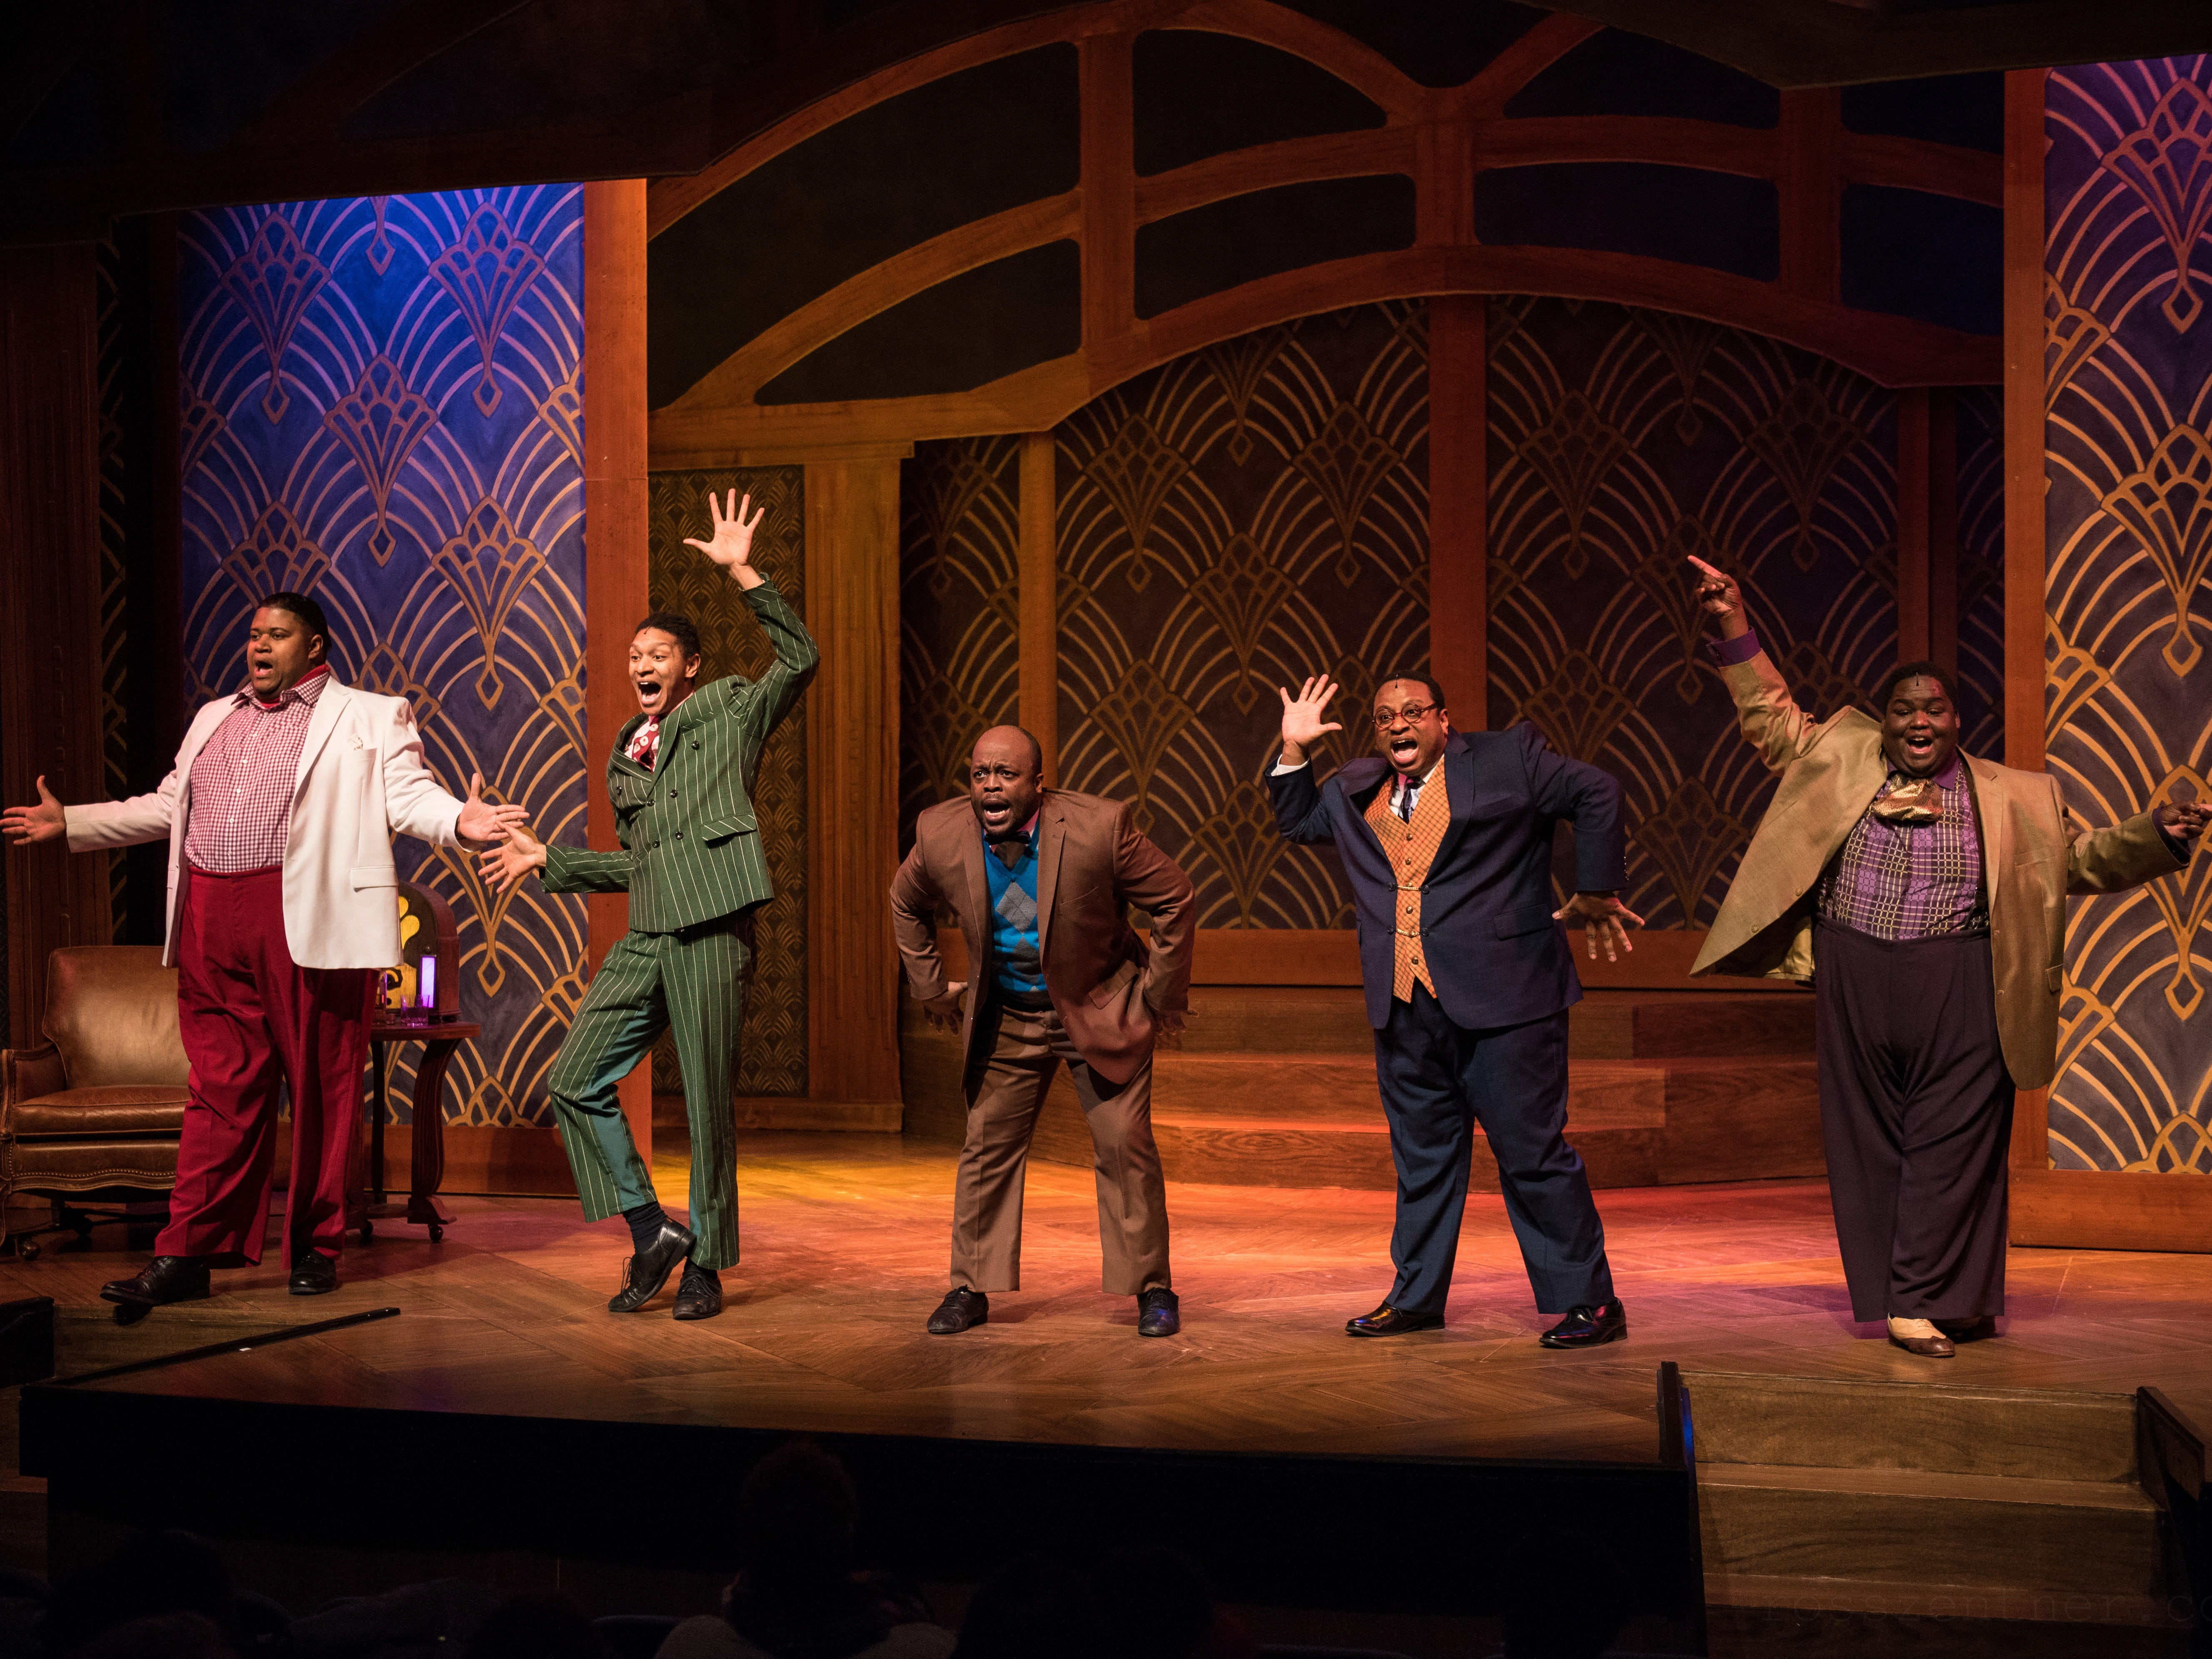 """It's Big Moe (Lorenzo Rush Jr., from left), Eat Moe (Sean Anthony Jackson), No Moe (Shawn Holmes), Four-Eyed Moe (James Carrington) and Little Moe (Kevin James Sievert), in a scene from Skylight Music Theatre's production of """"Five Guys Named Moe."""""""